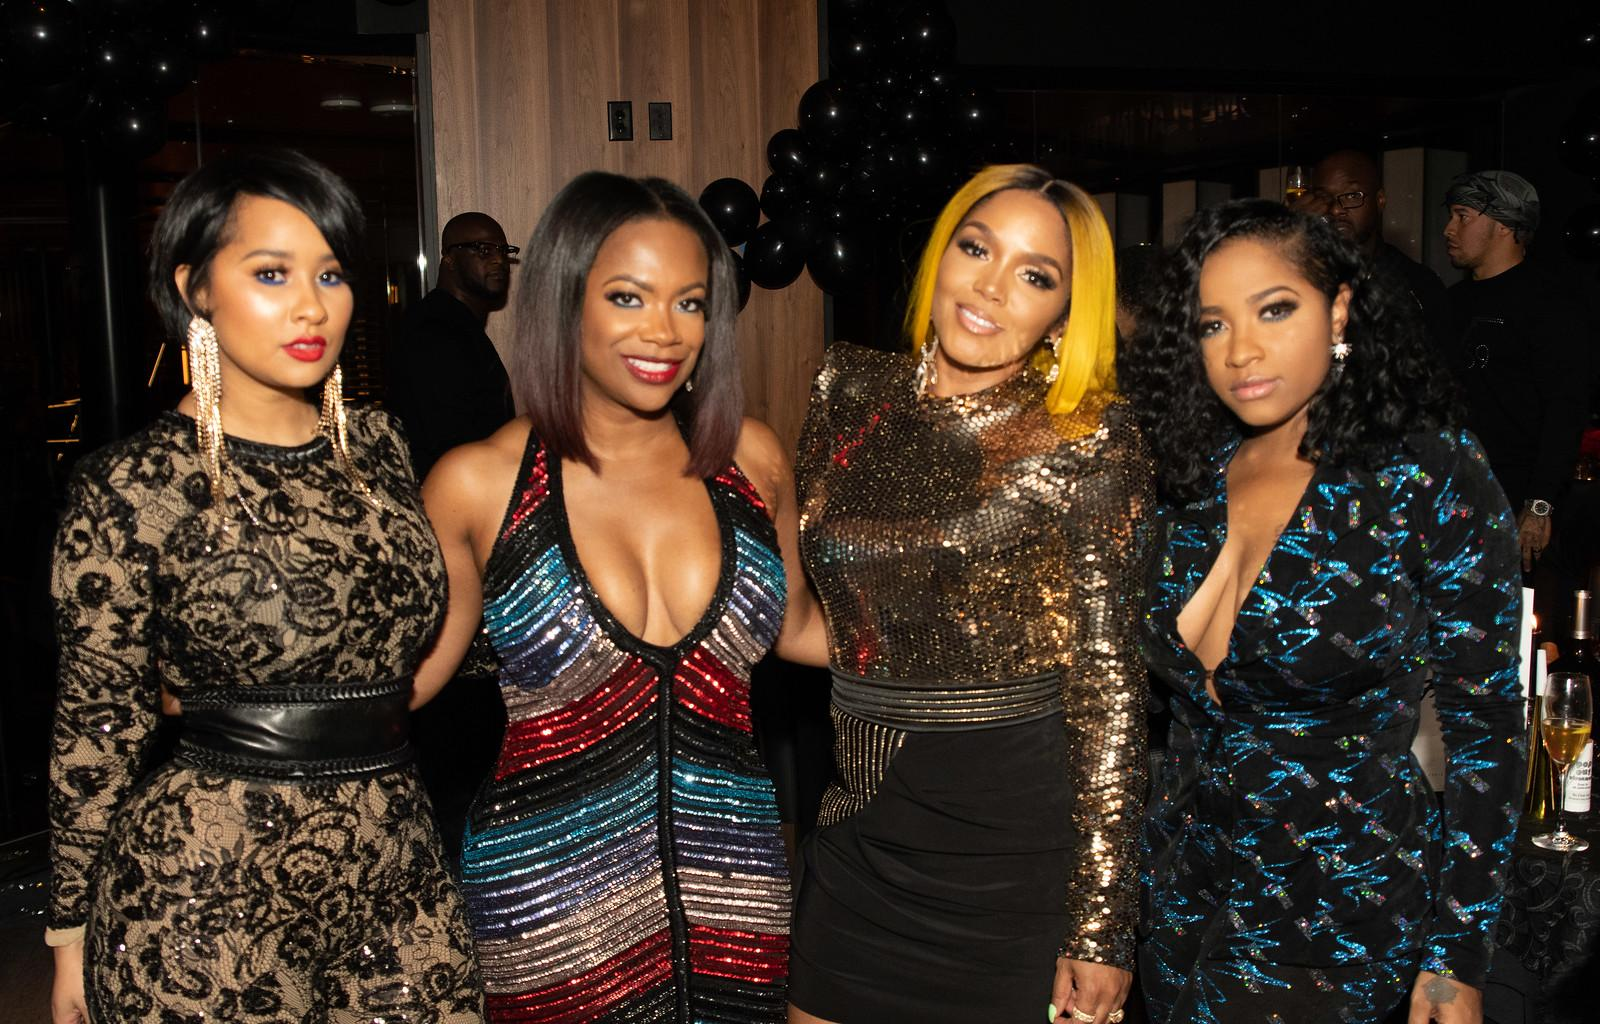 Rasheeda Frost And Toya Wright Share Pics From The New Year's Eve Party At The Frost Bistro